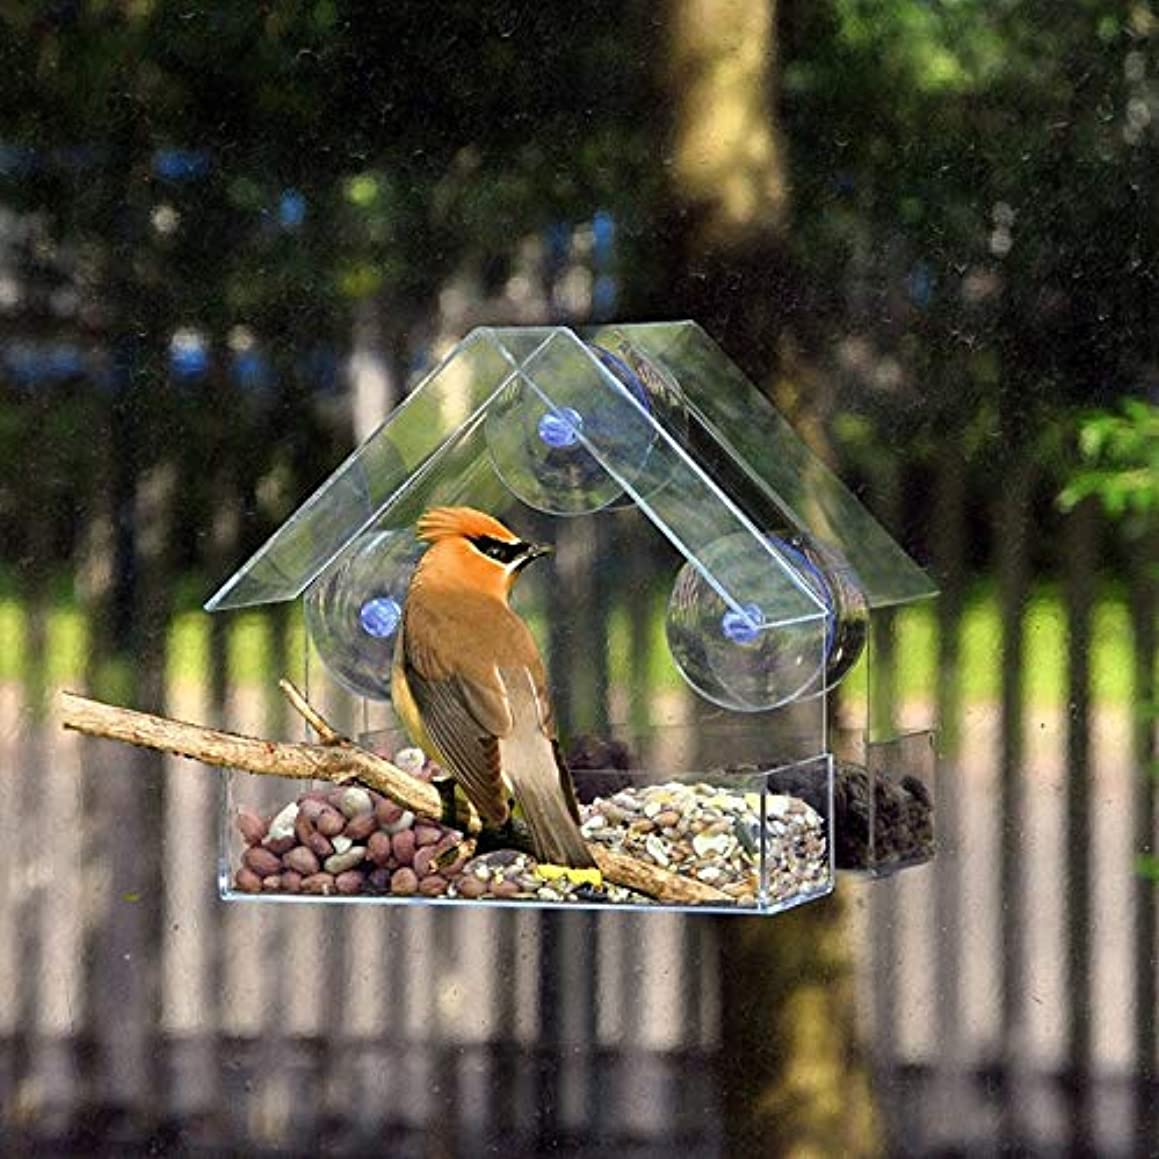 Cacys-Store - Creative Window Bird Feeders Sale Clear Glass Window Viewing Bird Feed el Table Seed Peanut Hanging Suction For Pet Bird